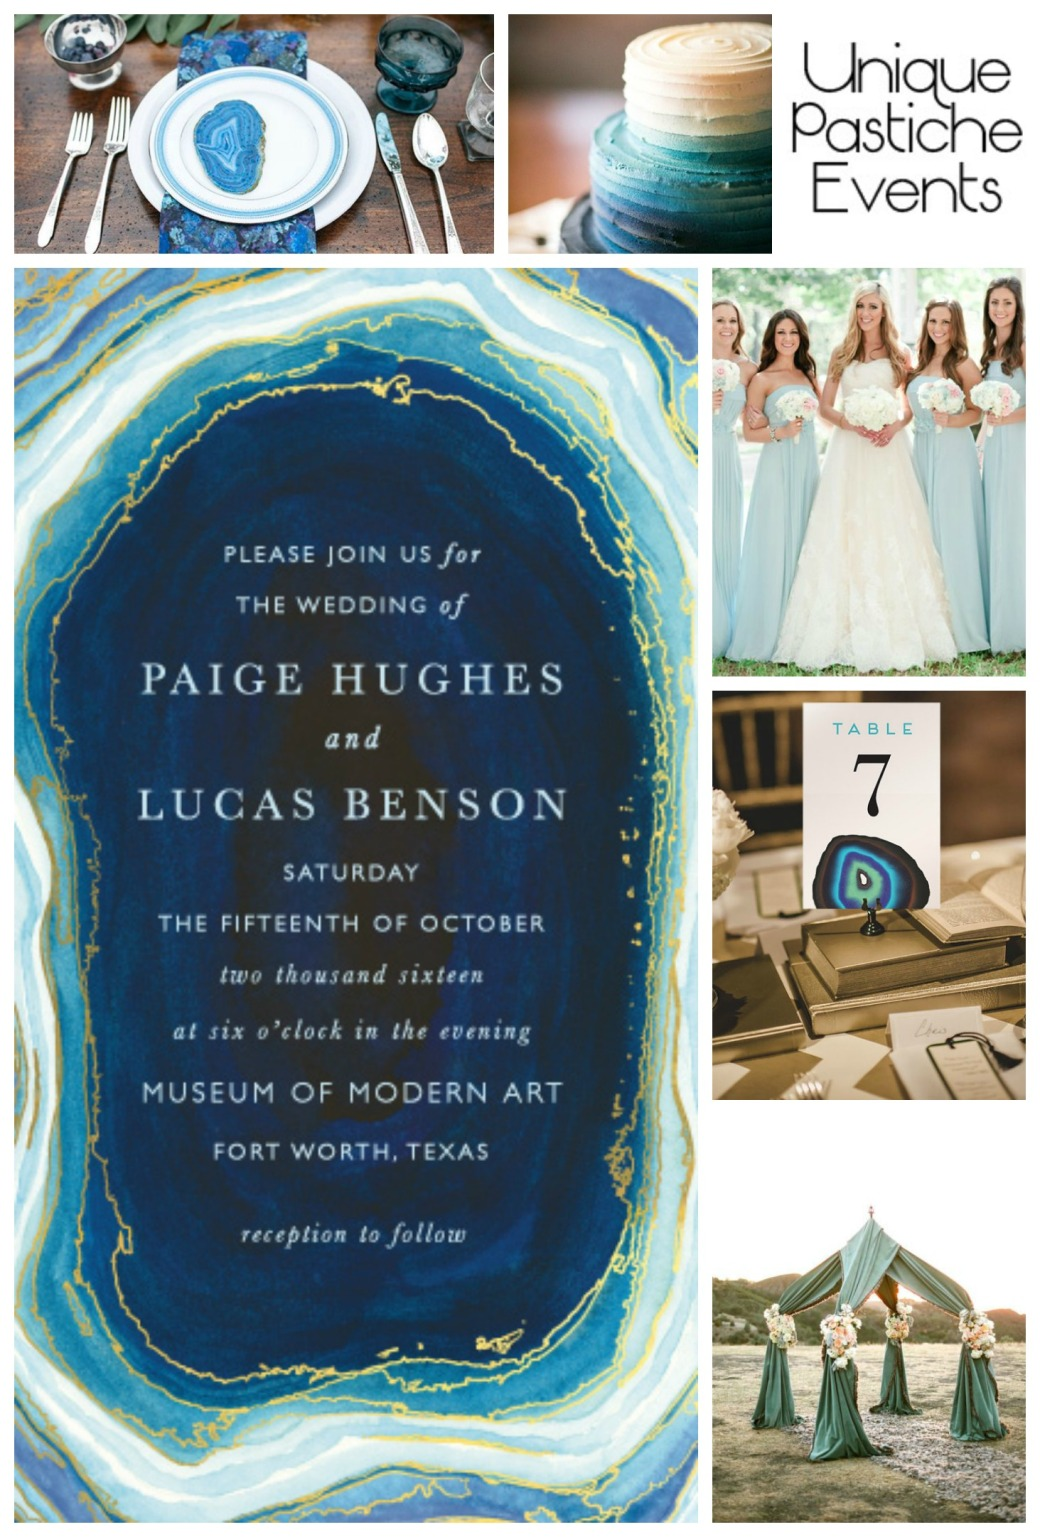 Blue + Gold Agate Wedding Ideas Enjoy the full post here: https://uniquepasticheevents.com/2015/05/13/blue-gold-agate-wedding-ideas/